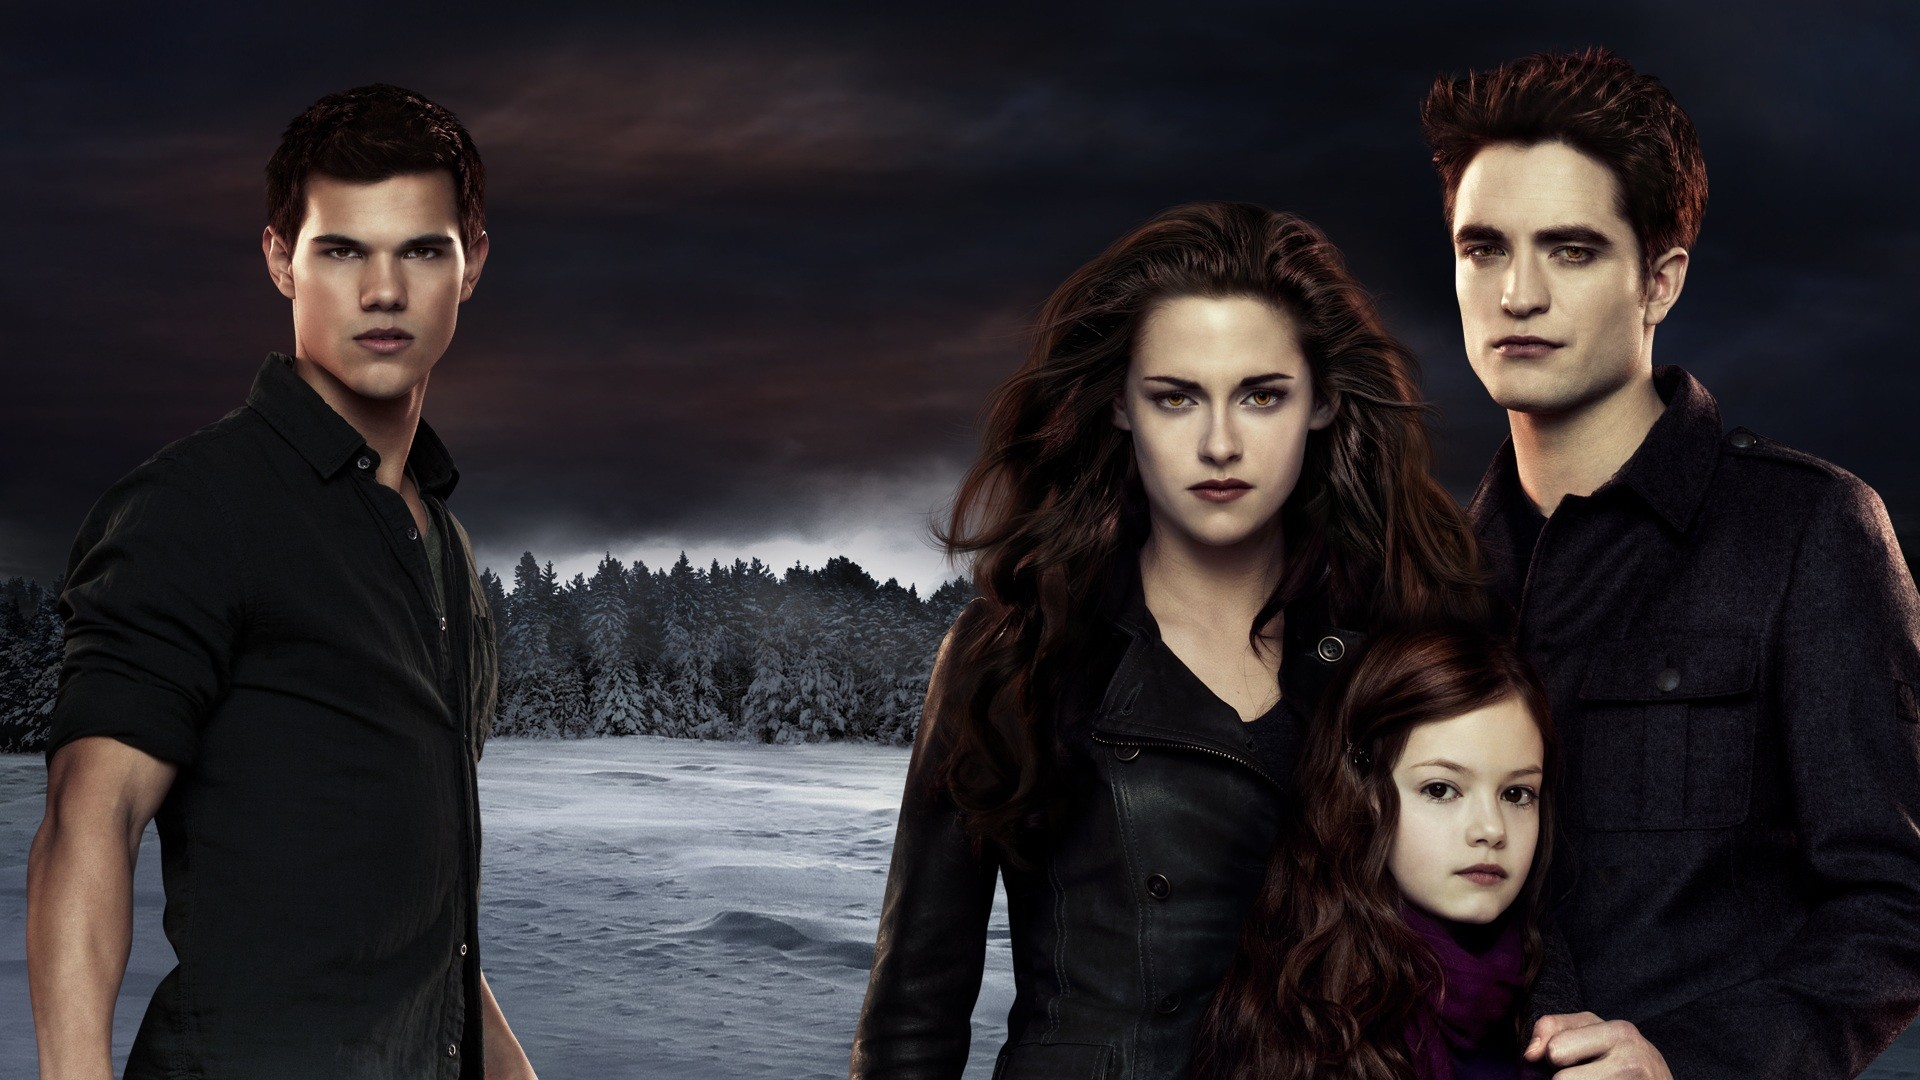 twilight series images breaking dawn hd wallpaper and background